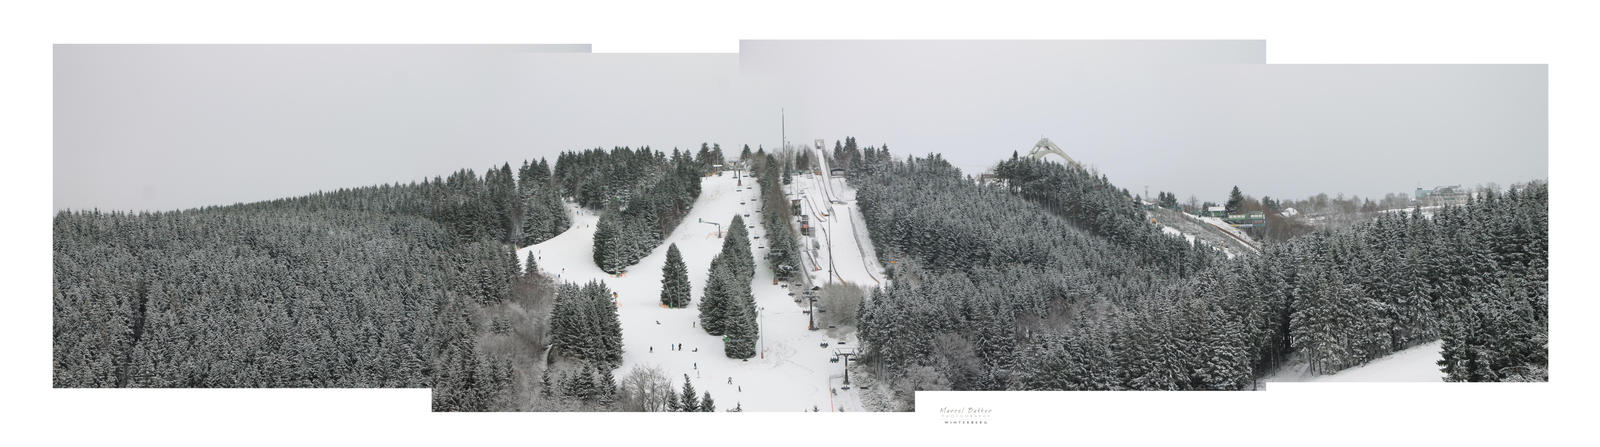 Winterberg by MBKKR